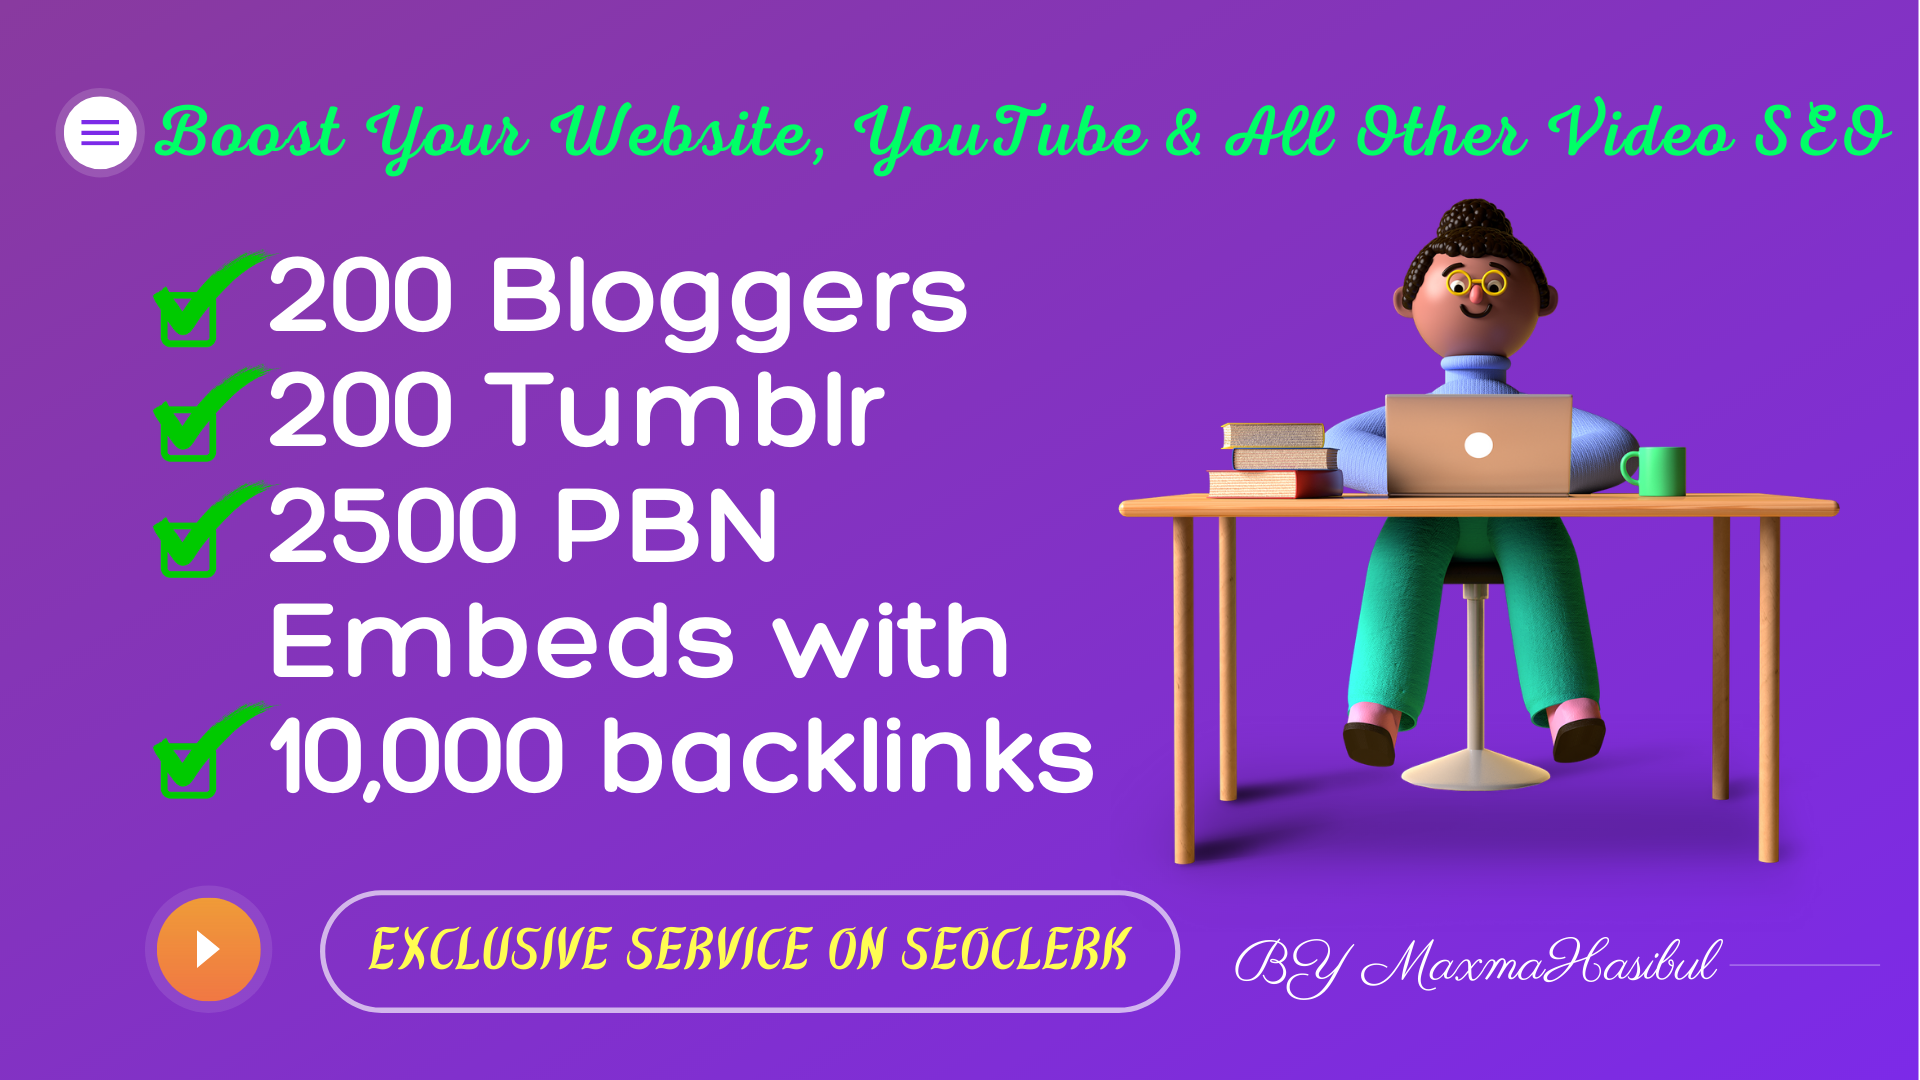 YouTube Video SEO Promotions on 200 Blogger,  200 Tumblr,  2500 PBN Blog Embeds with 10,000 Backlinks